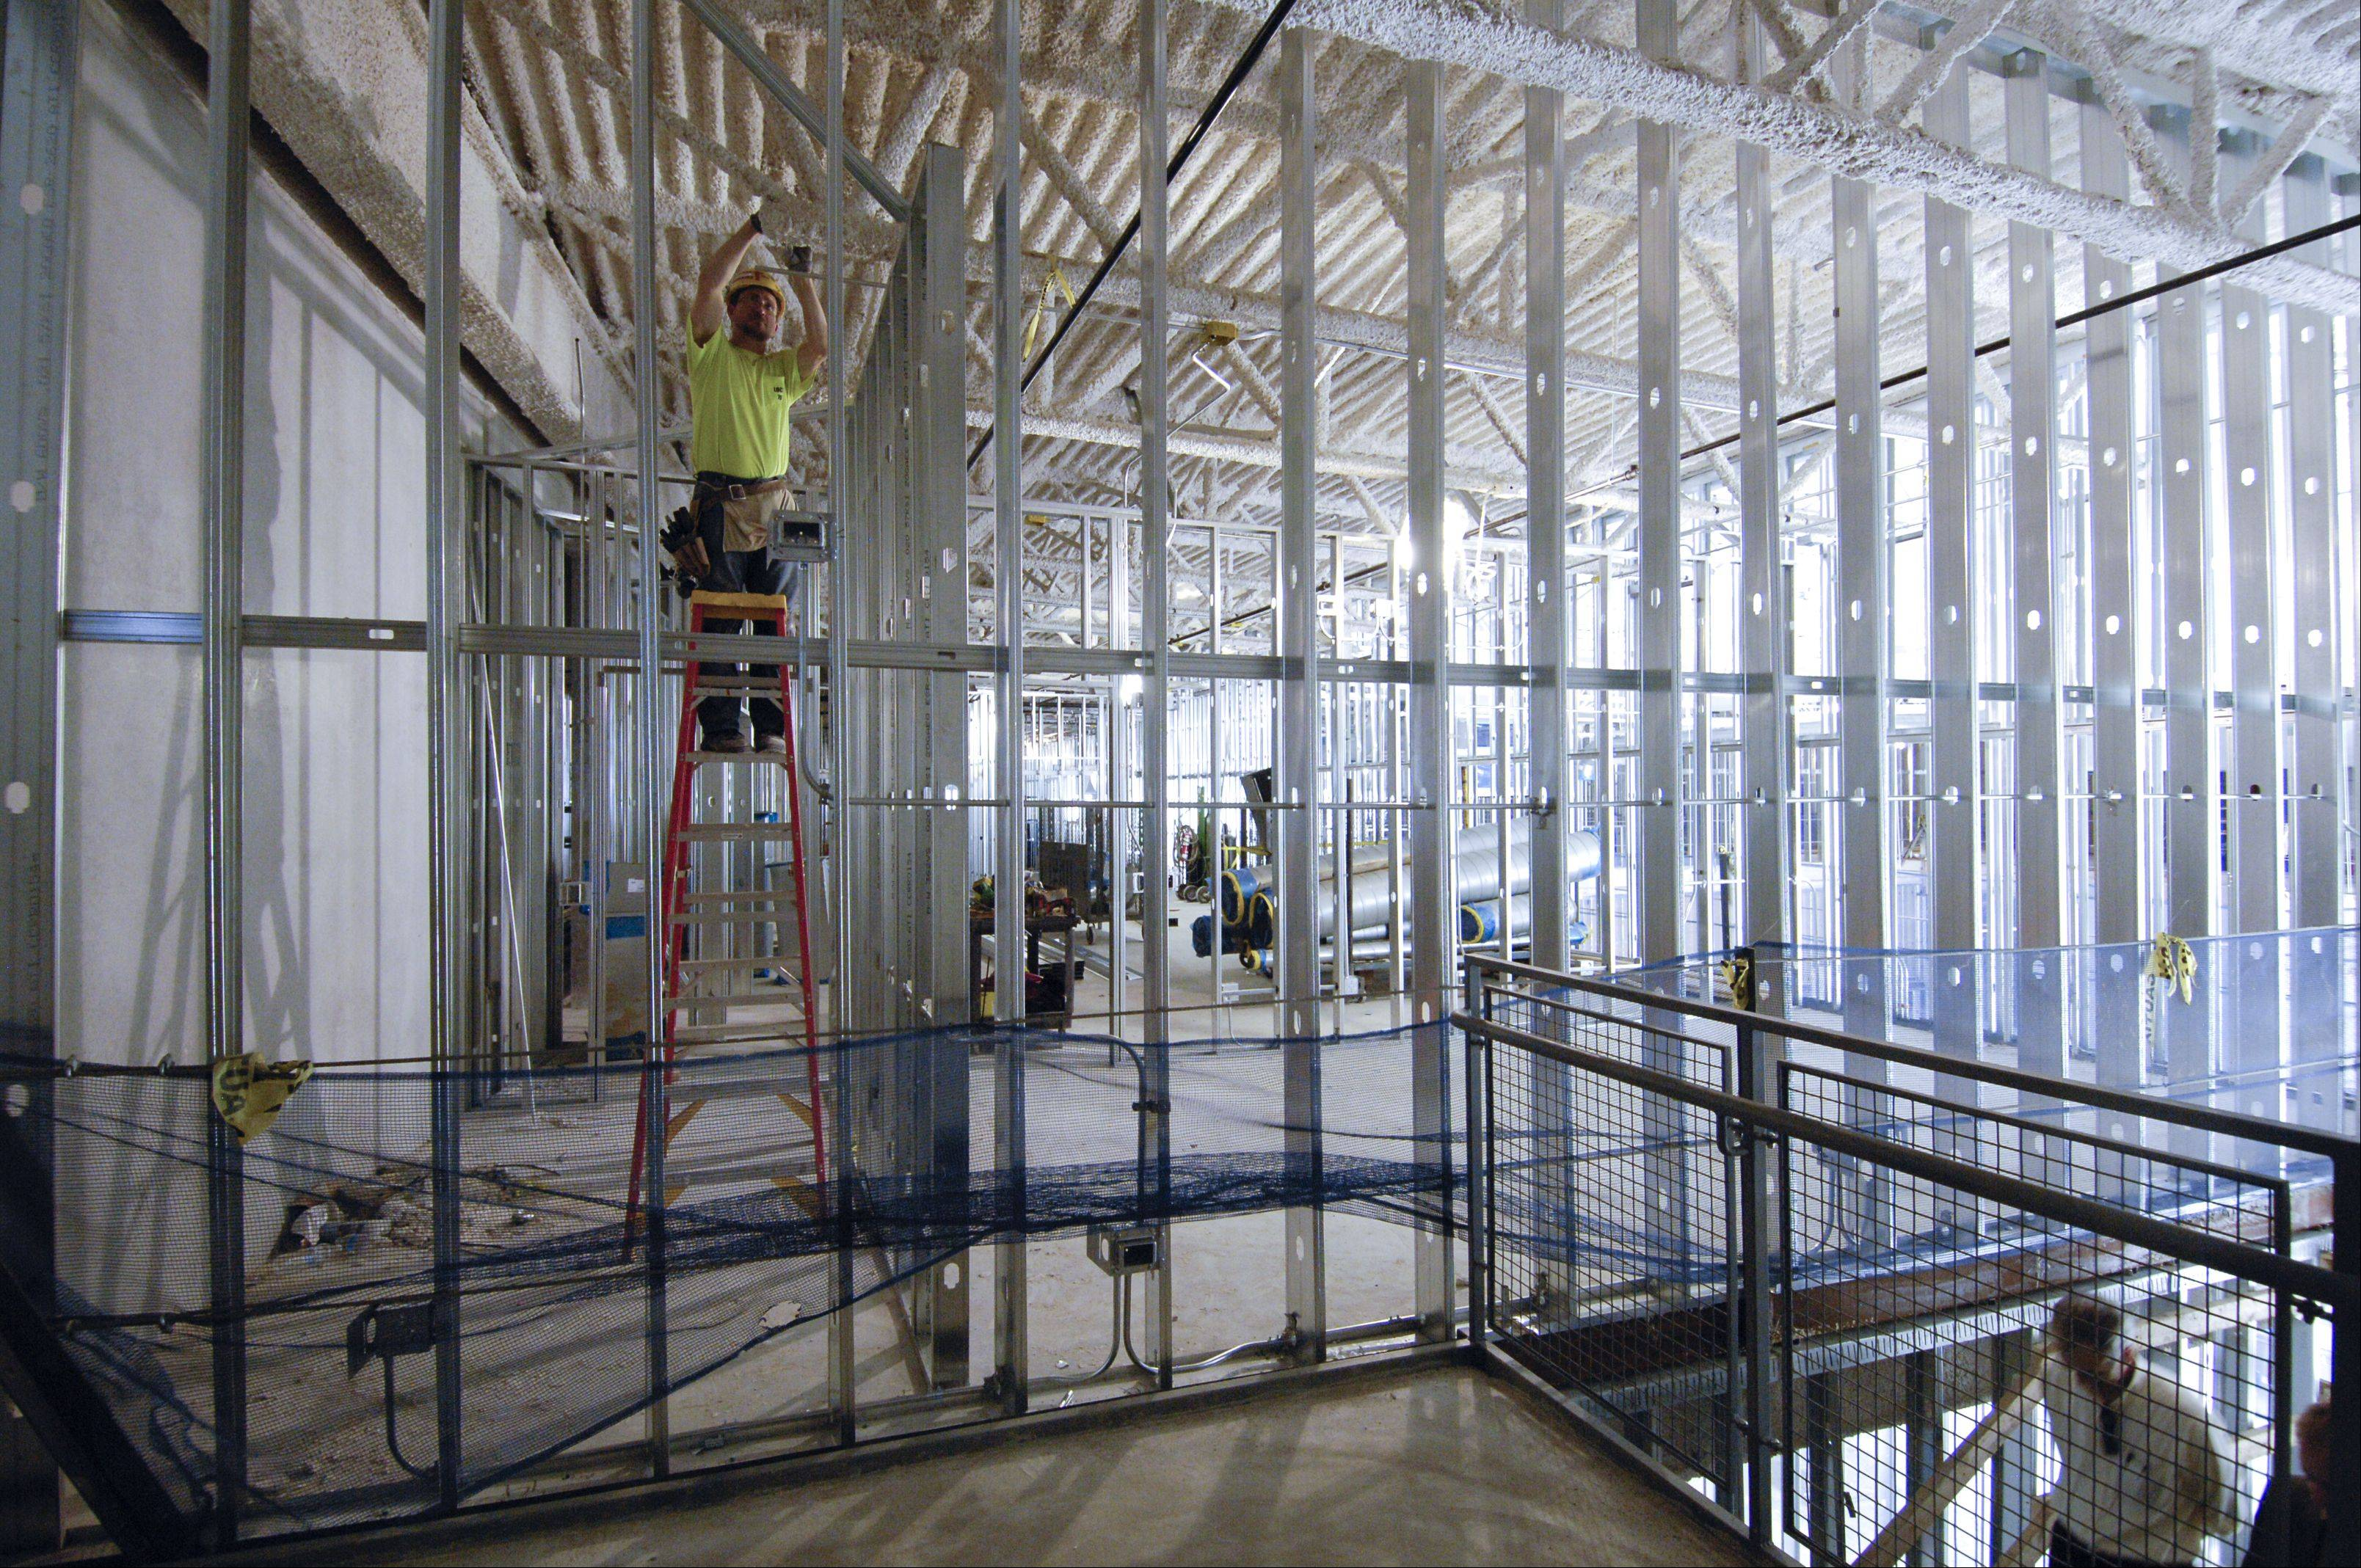 Interior construction continues at the future Universal Technical Institute campus in Lisle. More than 100 workers are assigned to the project, officials said.